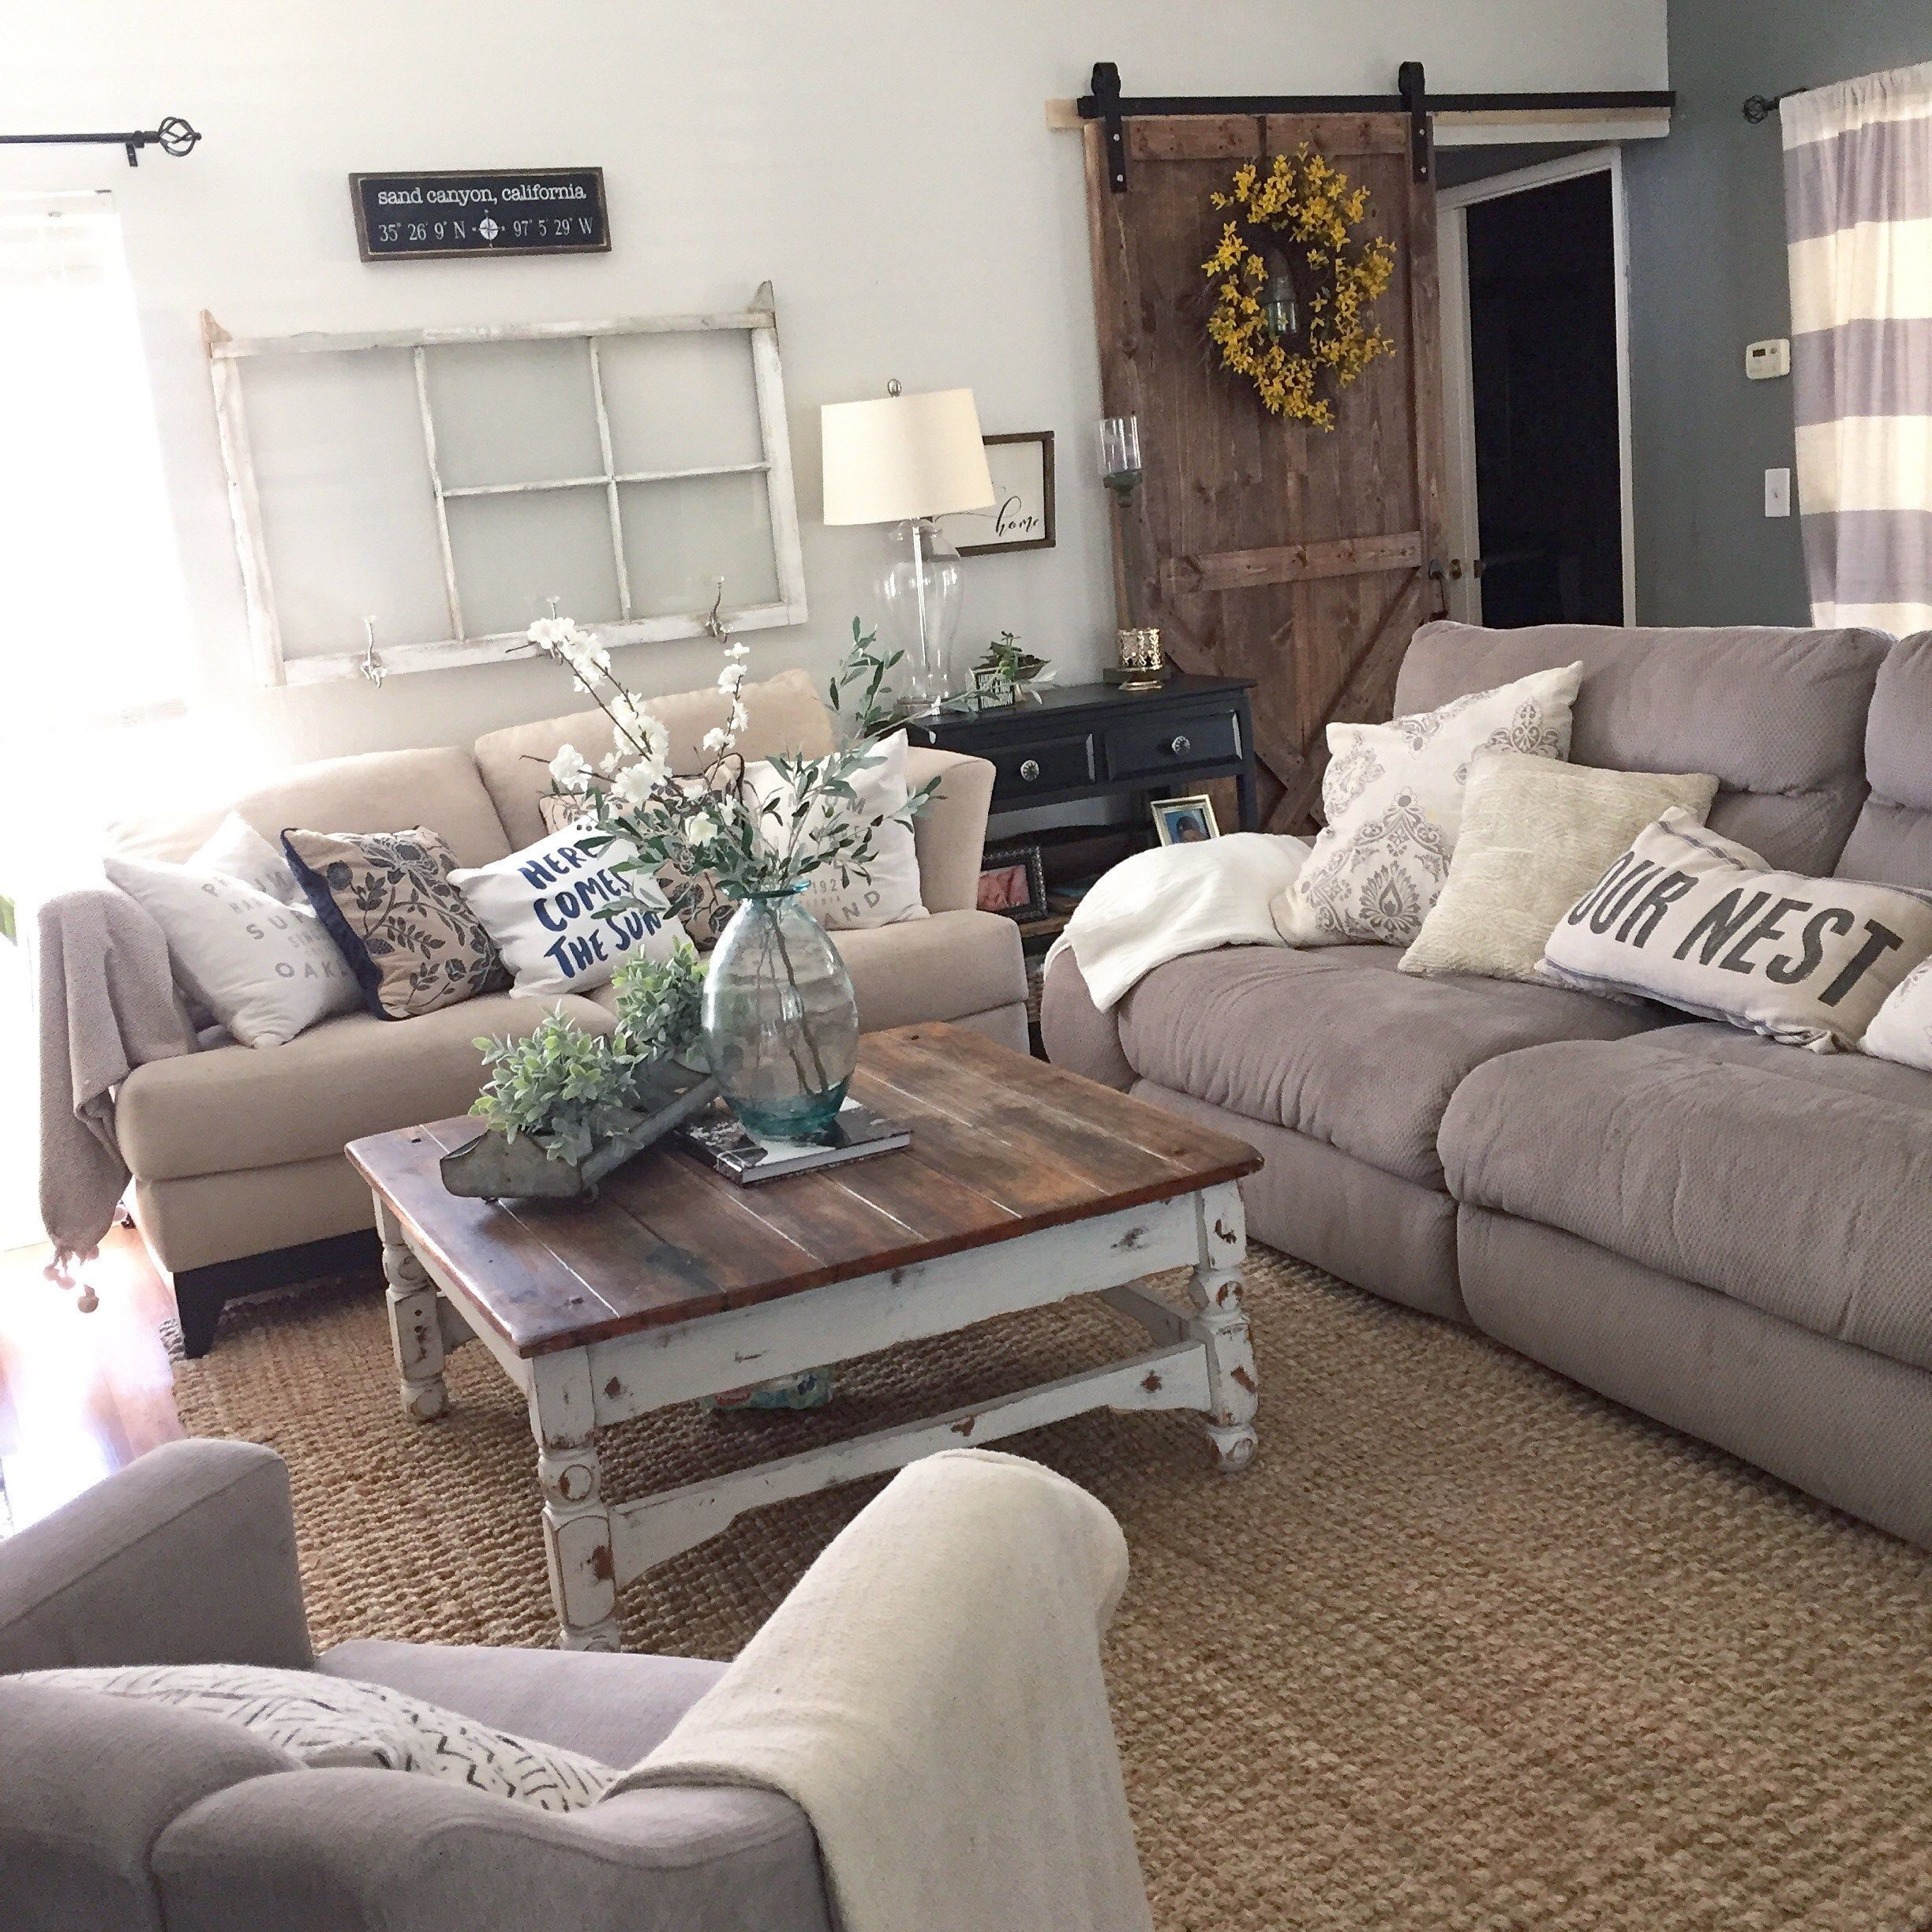 Beautiful Living Rooms On A Budget That Look Expensive: Lifestyle. Decor. Vintage